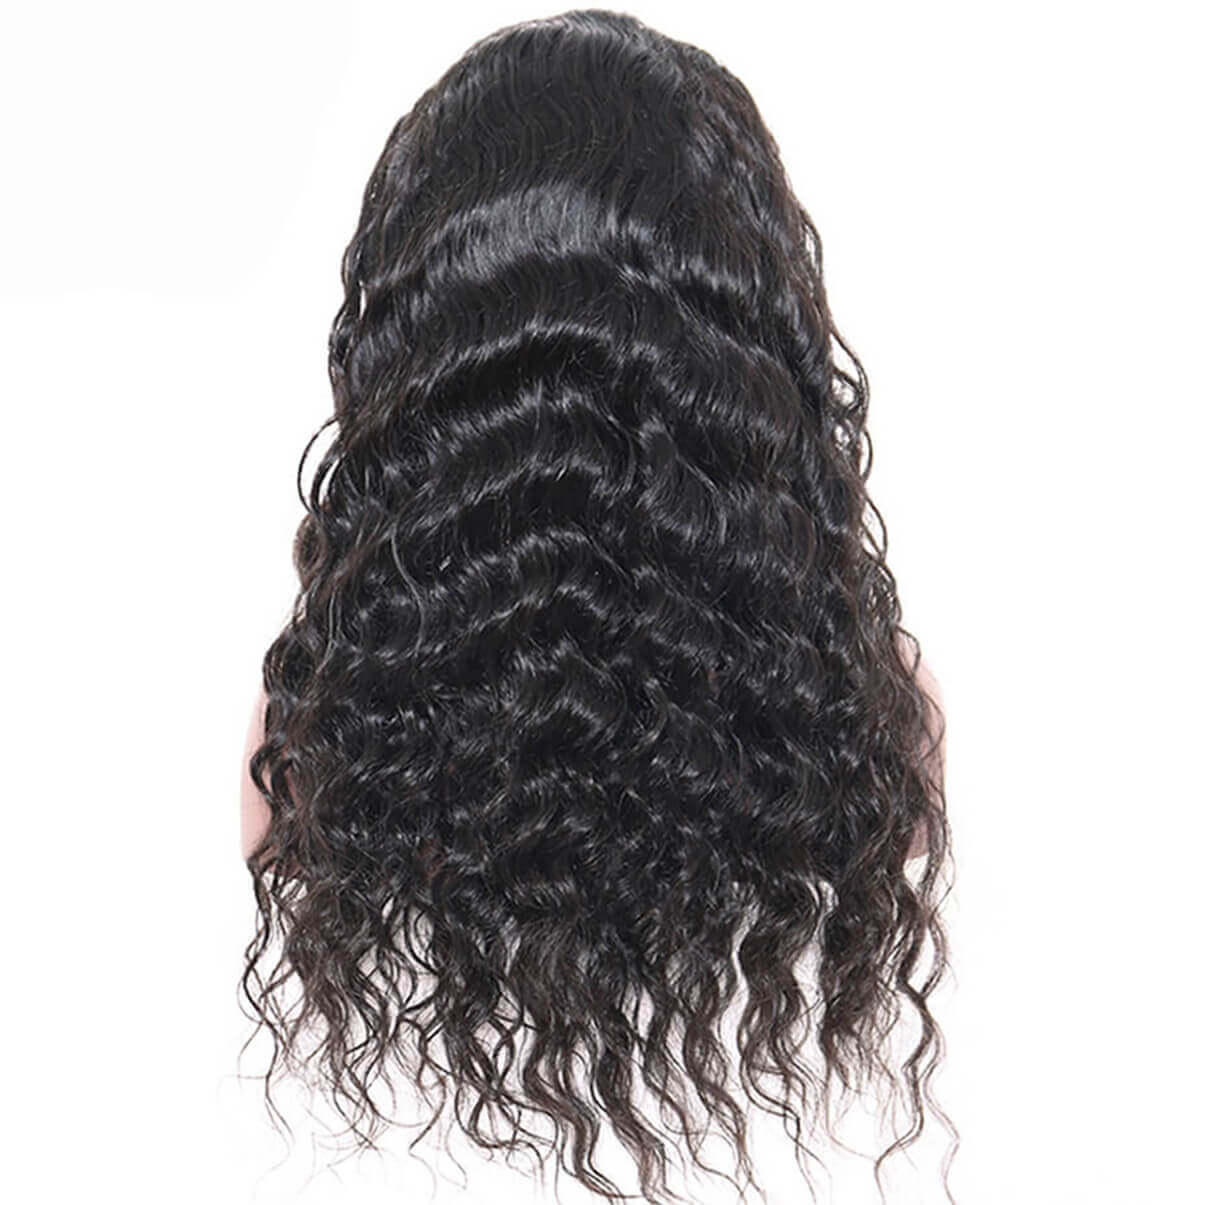 Lakihair Full Lace Virgin Human Hair Wigs Loose Wave 180% Density Pre Plucked With Baby Hair